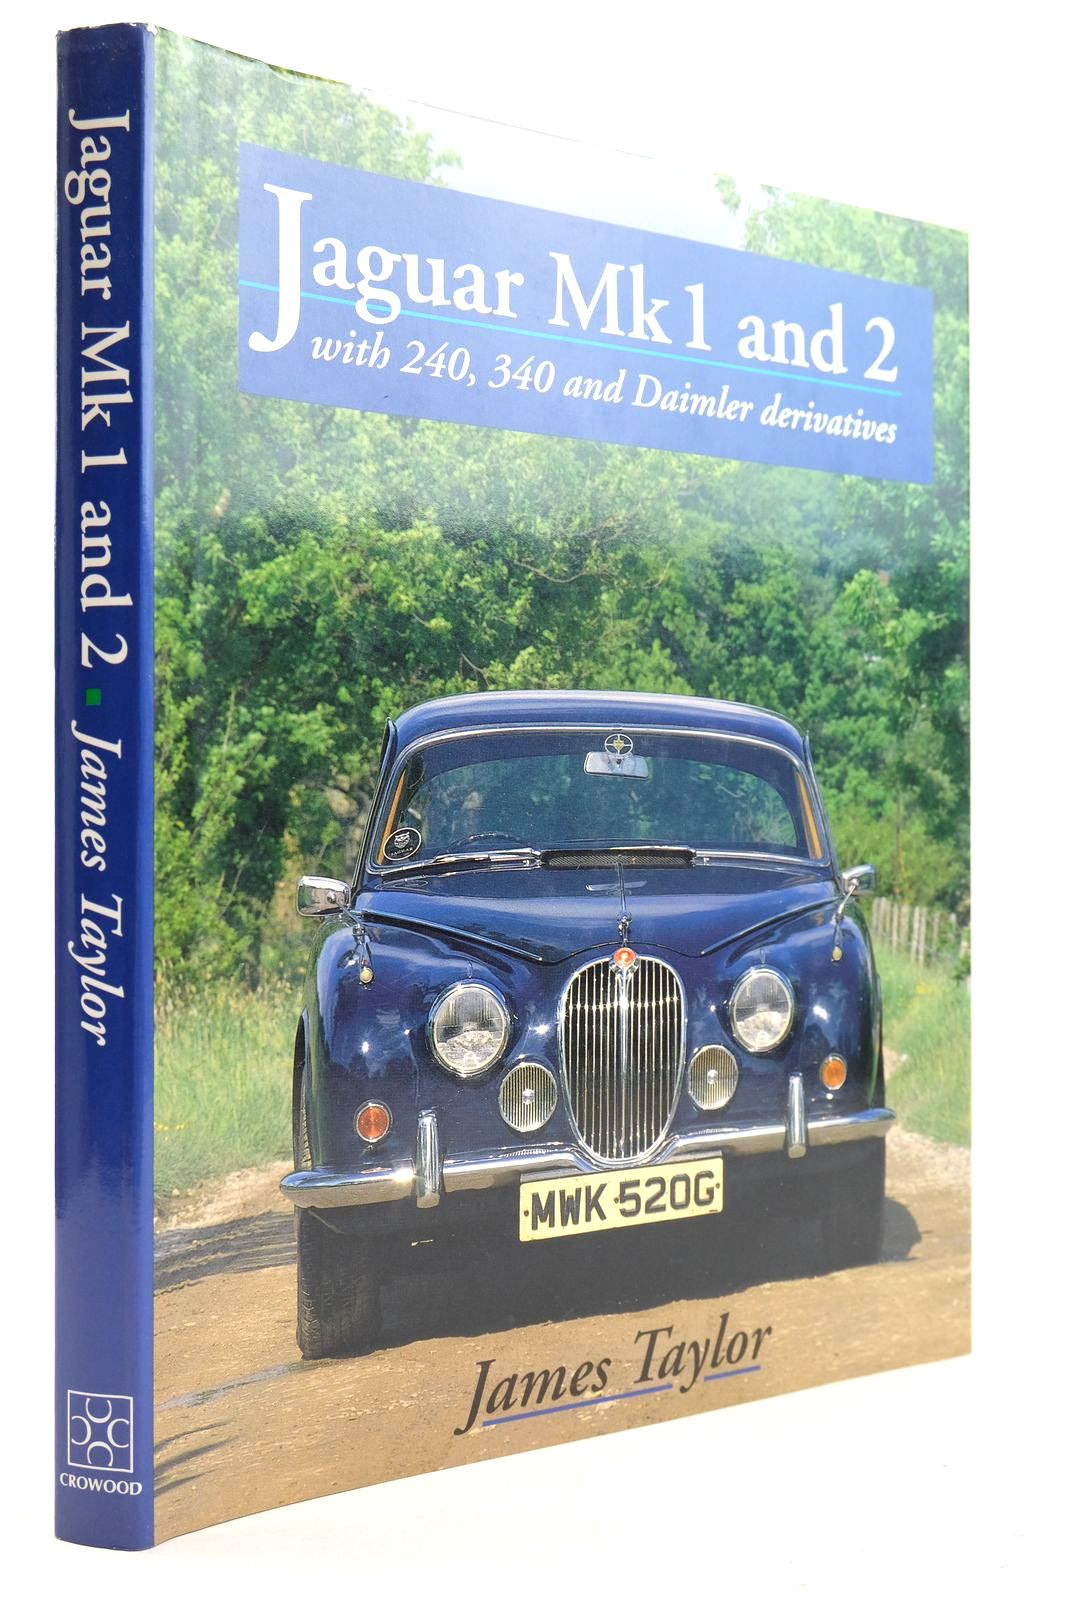 Photo of JAGUAR MK1 AND 2 written by Taylor, James published by Crowood (STOCK CODE: 2132825)  for sale by Stella & Rose's Books